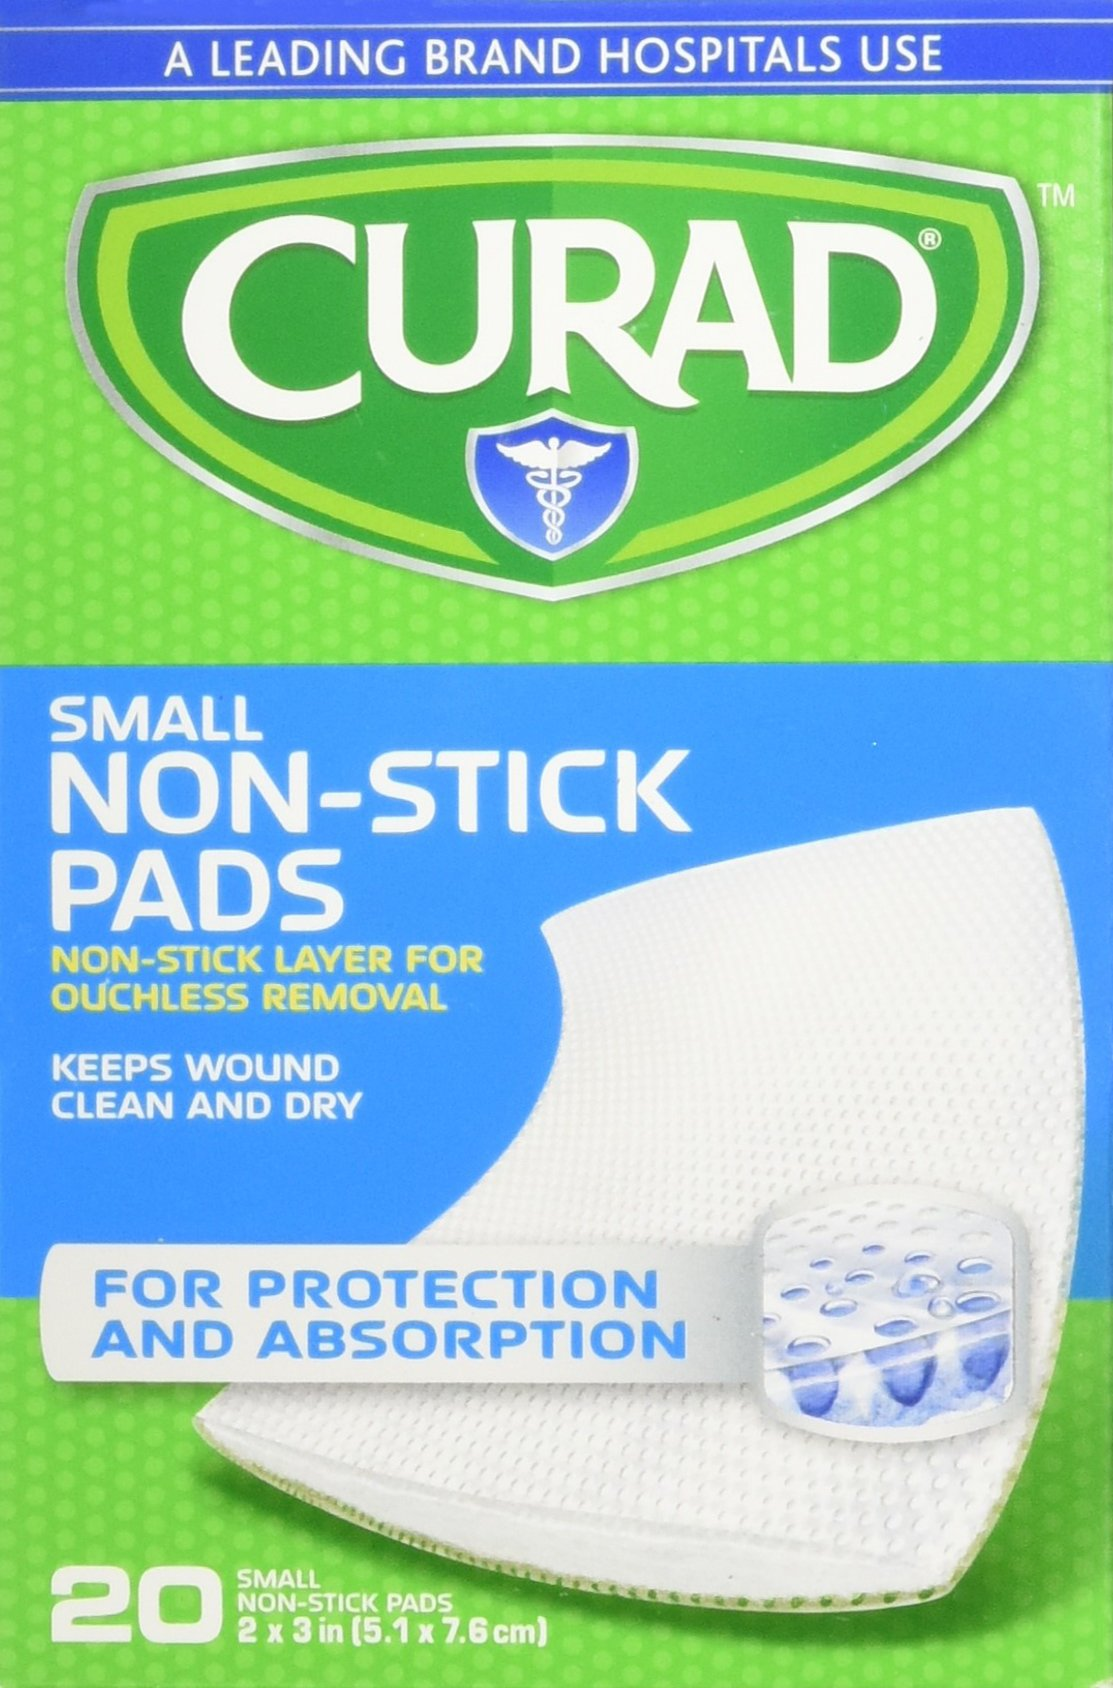 Curad Non-Stick Pads, 2 x 3-Inch, 20 Count - CUR47396RB